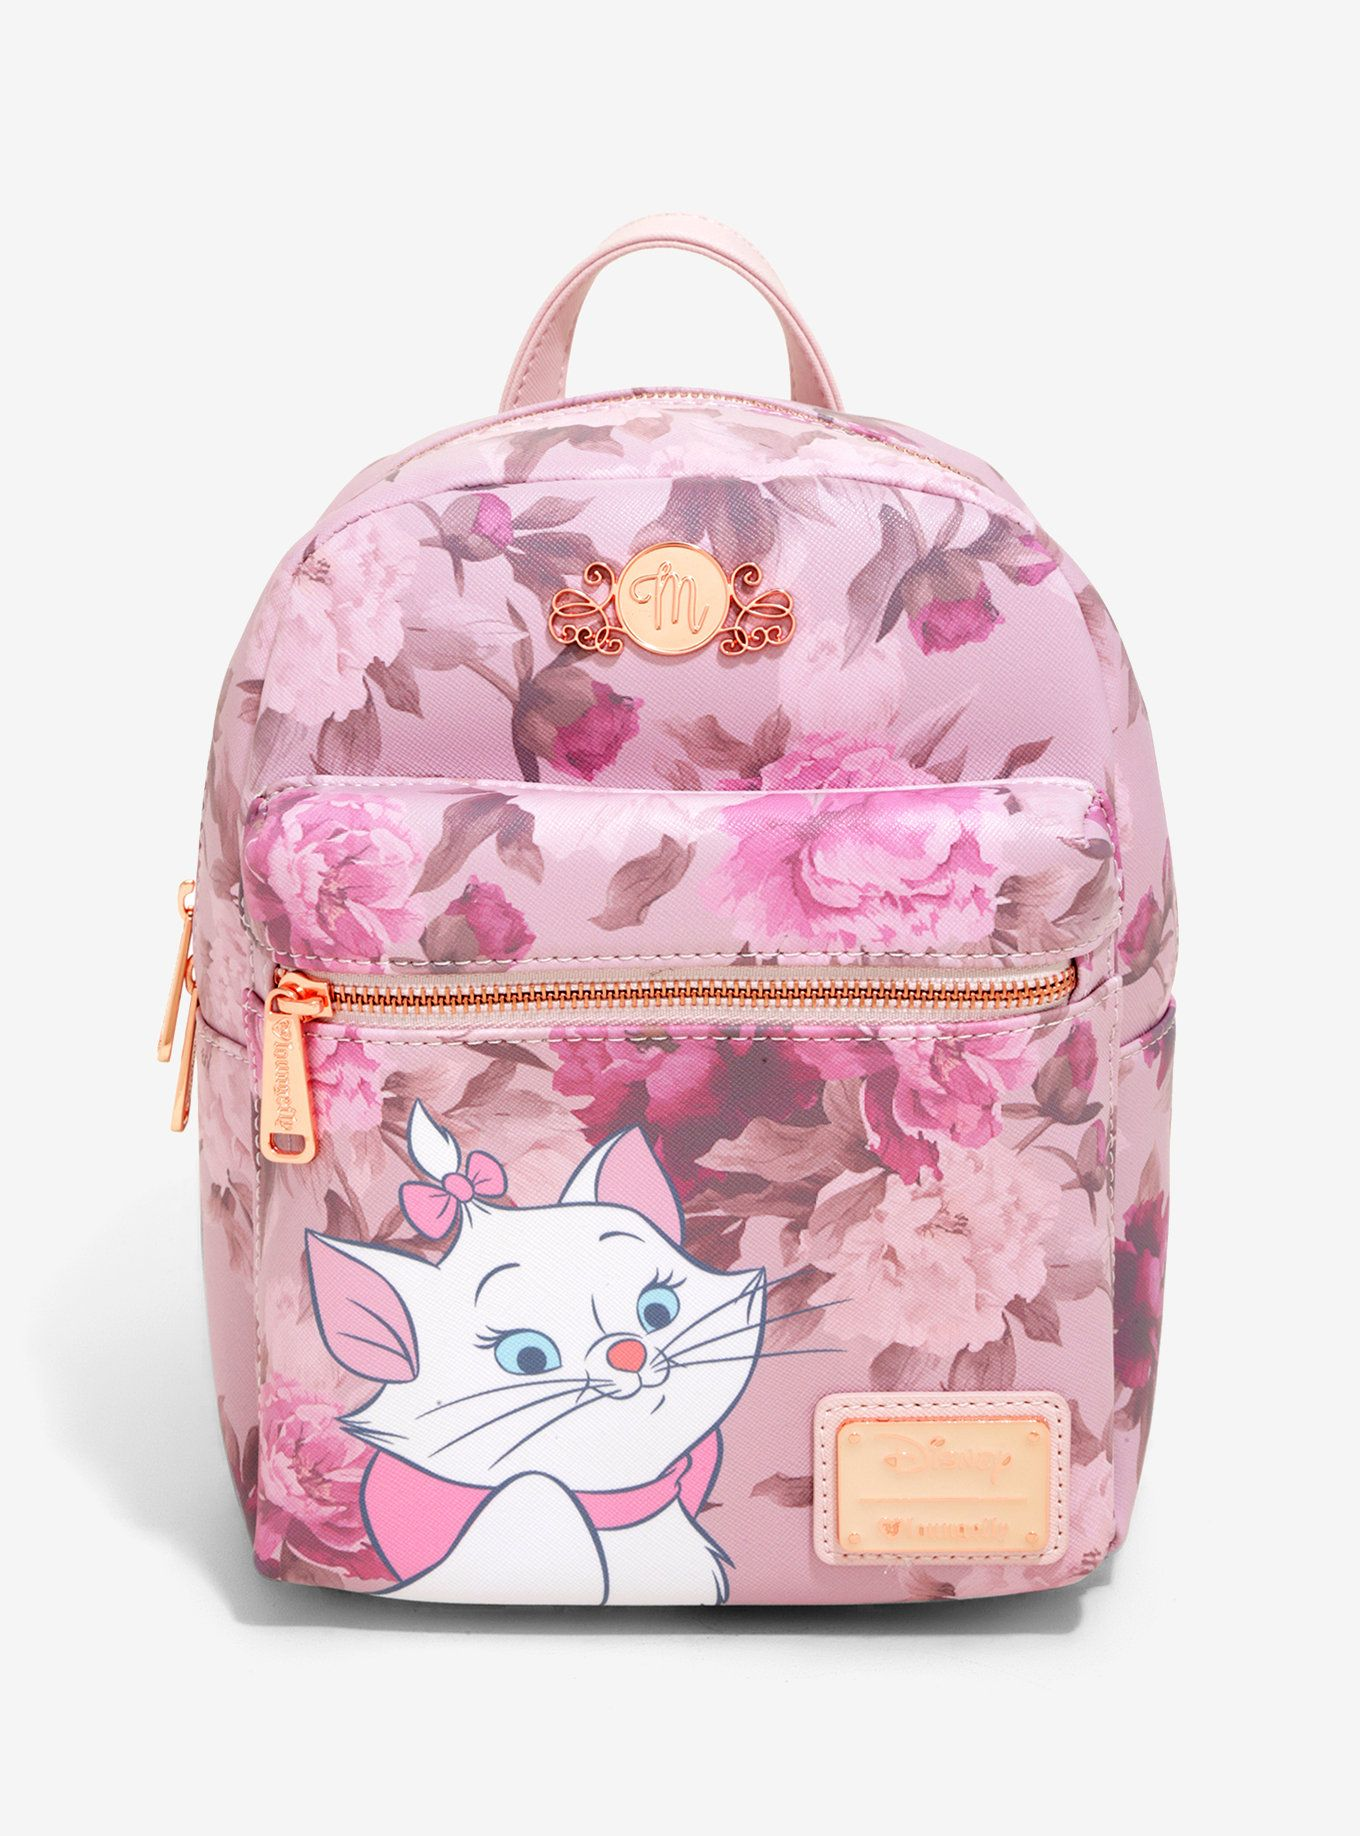 8dd5db9174f Loungefly Disney The Aristocats Marie Floral Mini Backpack - BoxLunch  Exclusive